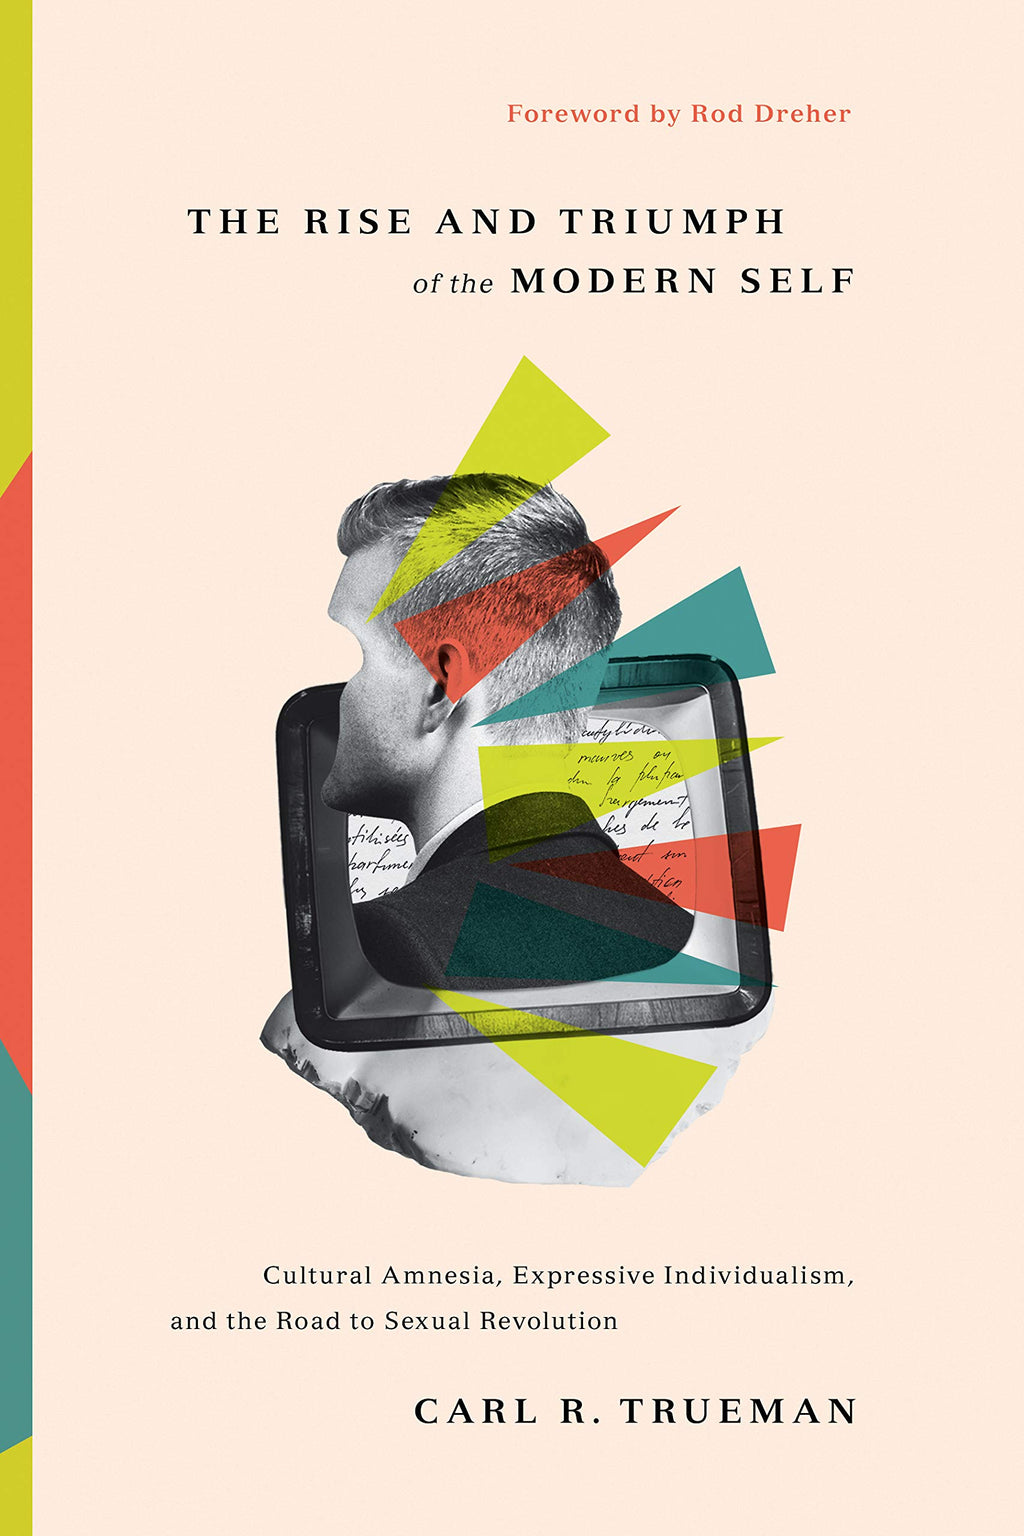 The Rise and Triumph of the Modern Self: Cultural Amnesia, Expressive Individualism, and the Road to Sexual Revolution - Trueman, Carl R; Dreher, Rod (foreword by) - 9781433556333